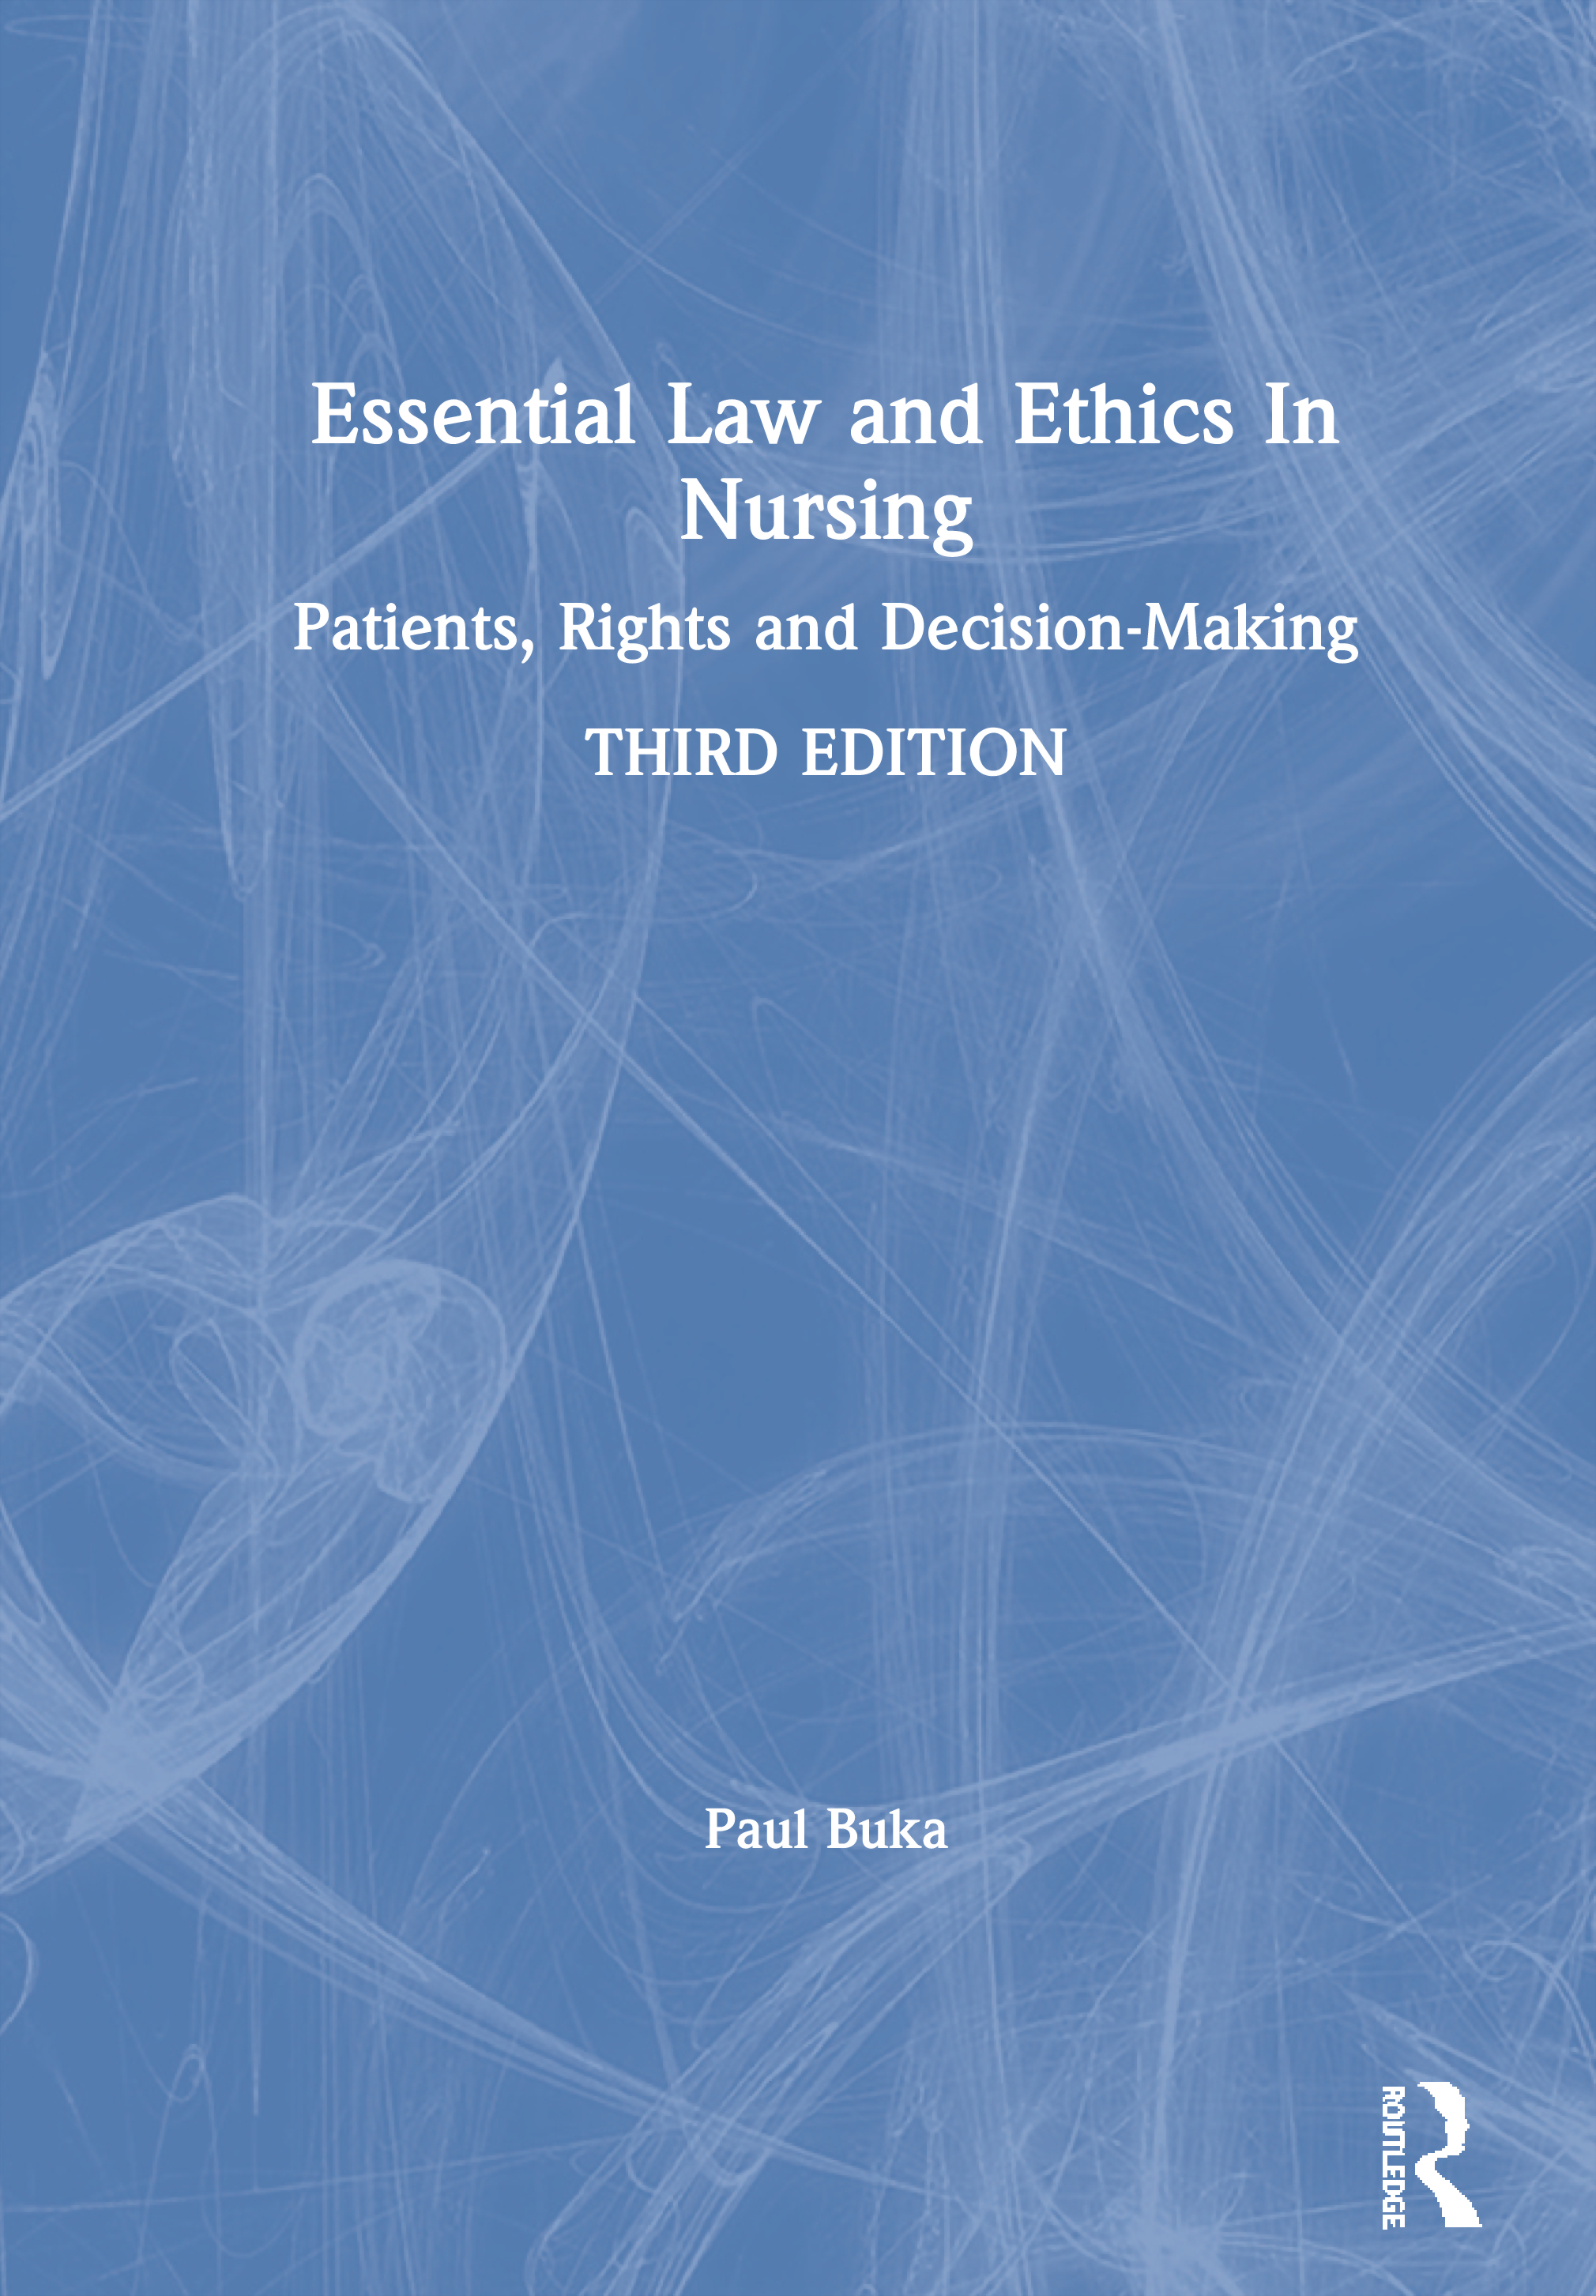 Essential Law and Ethics In Nursing: Patients, Rights and Decision-Making, 3rd Edition (Paperback) book cover